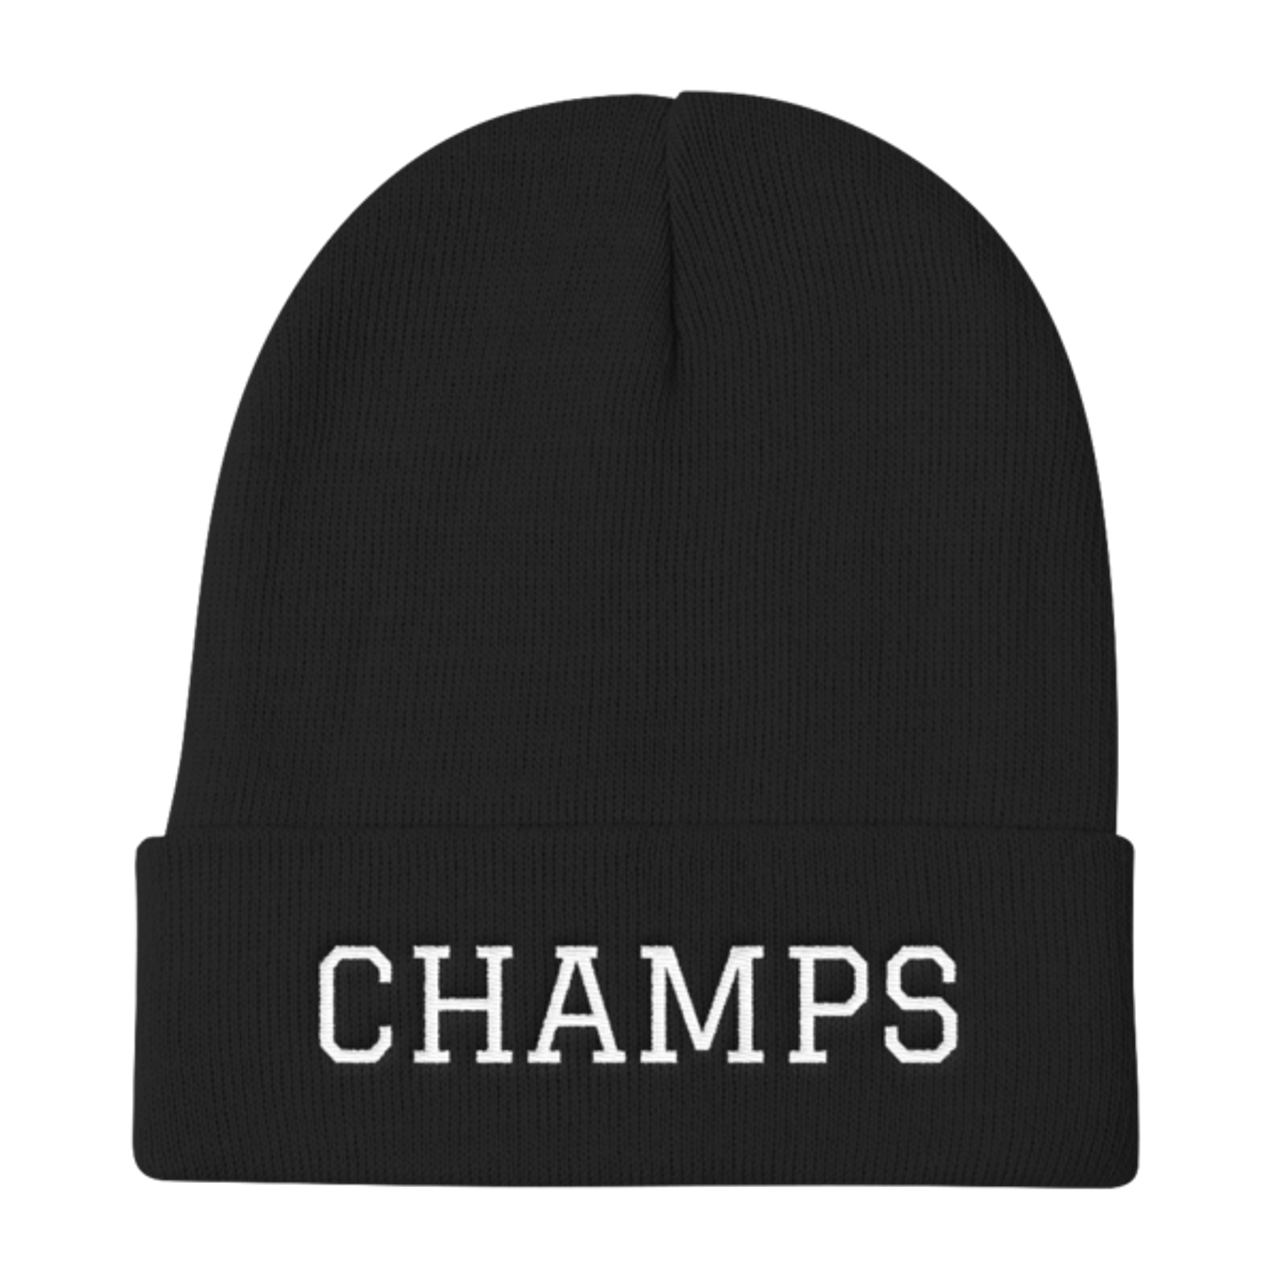 CHAMPS Embroidered Knit Beanie Black